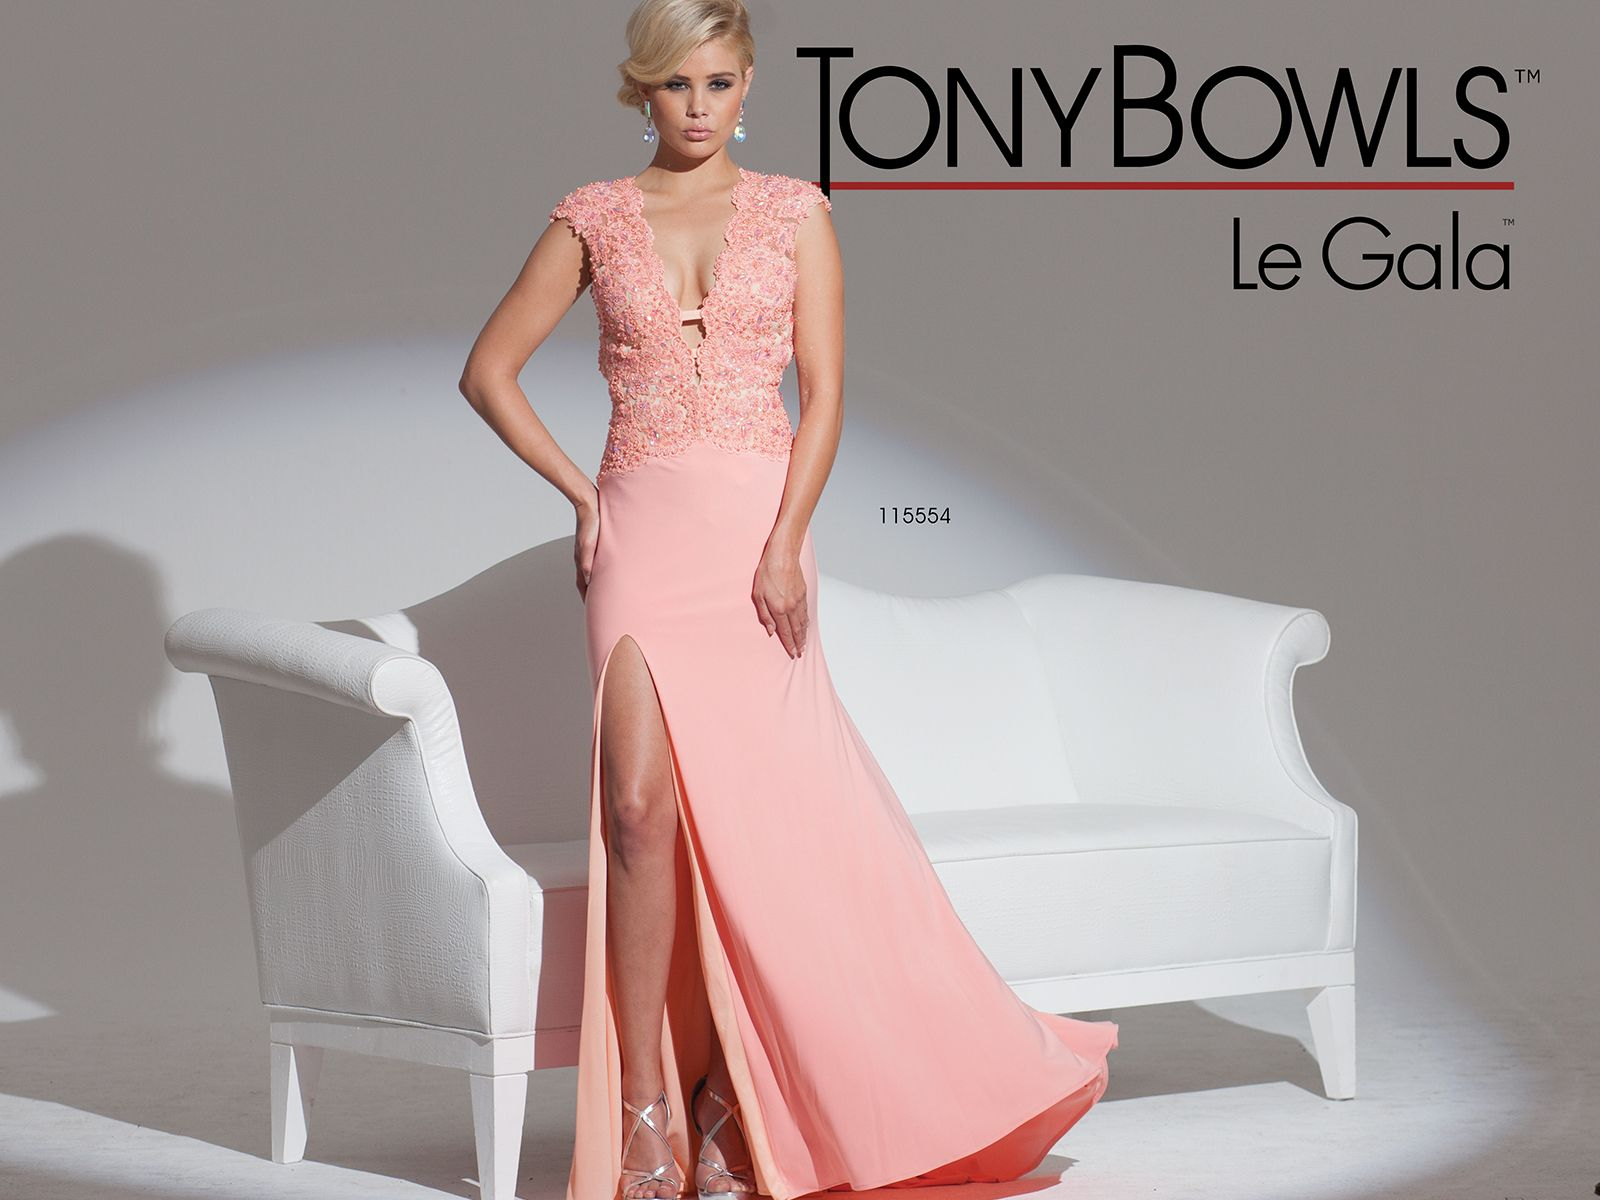 Tony Bowls Le Gala » Style No. 115554 » Tony Bowls | Pageant Season ...